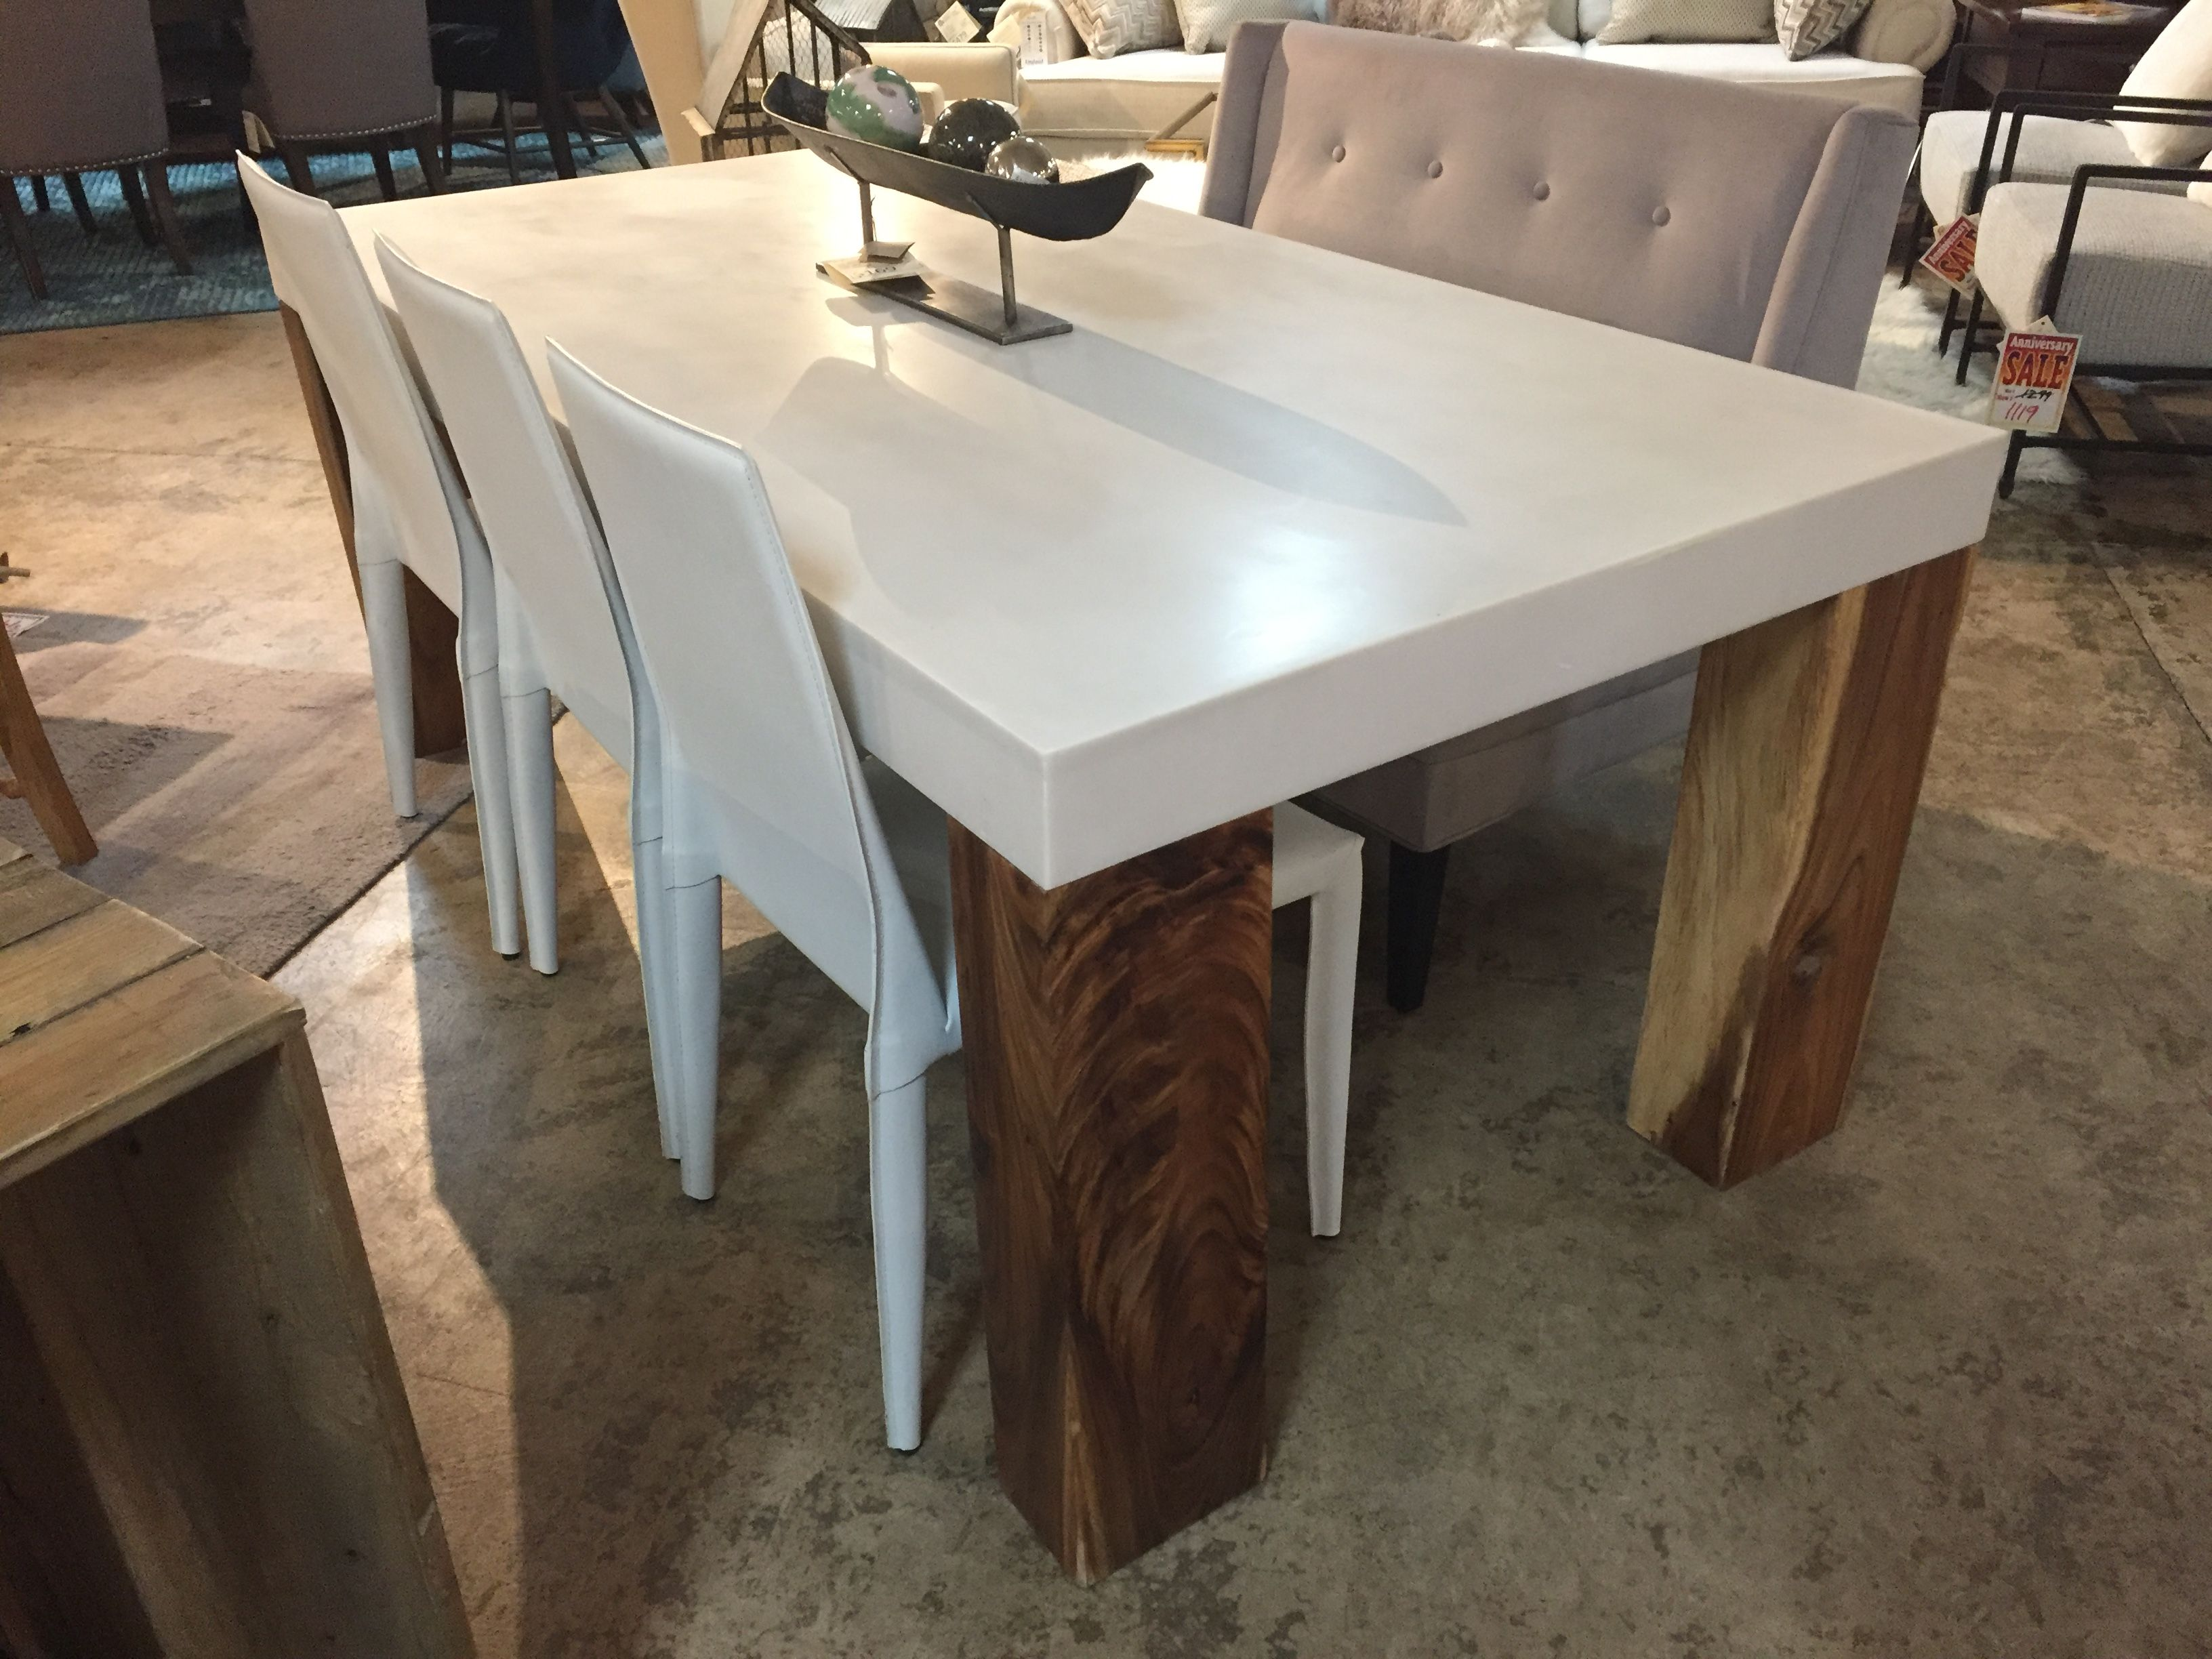 Modern rustic dining room table  A modern rustic dining table smooth concrete top with solid block